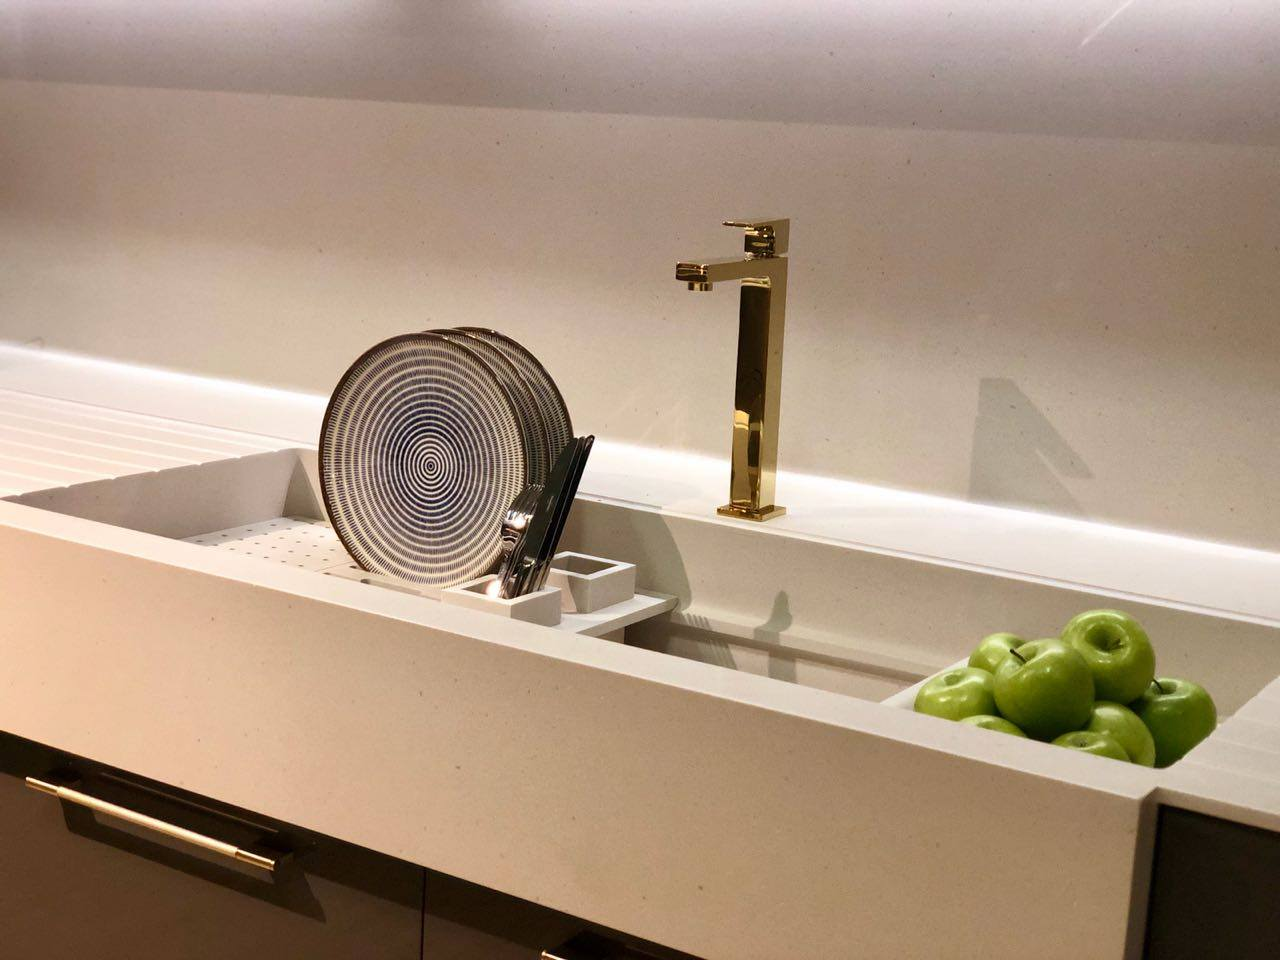 Cream coloured Corian worktop and integrated sink with gold tap. Plates stacked to left of sink with green apples on the right.